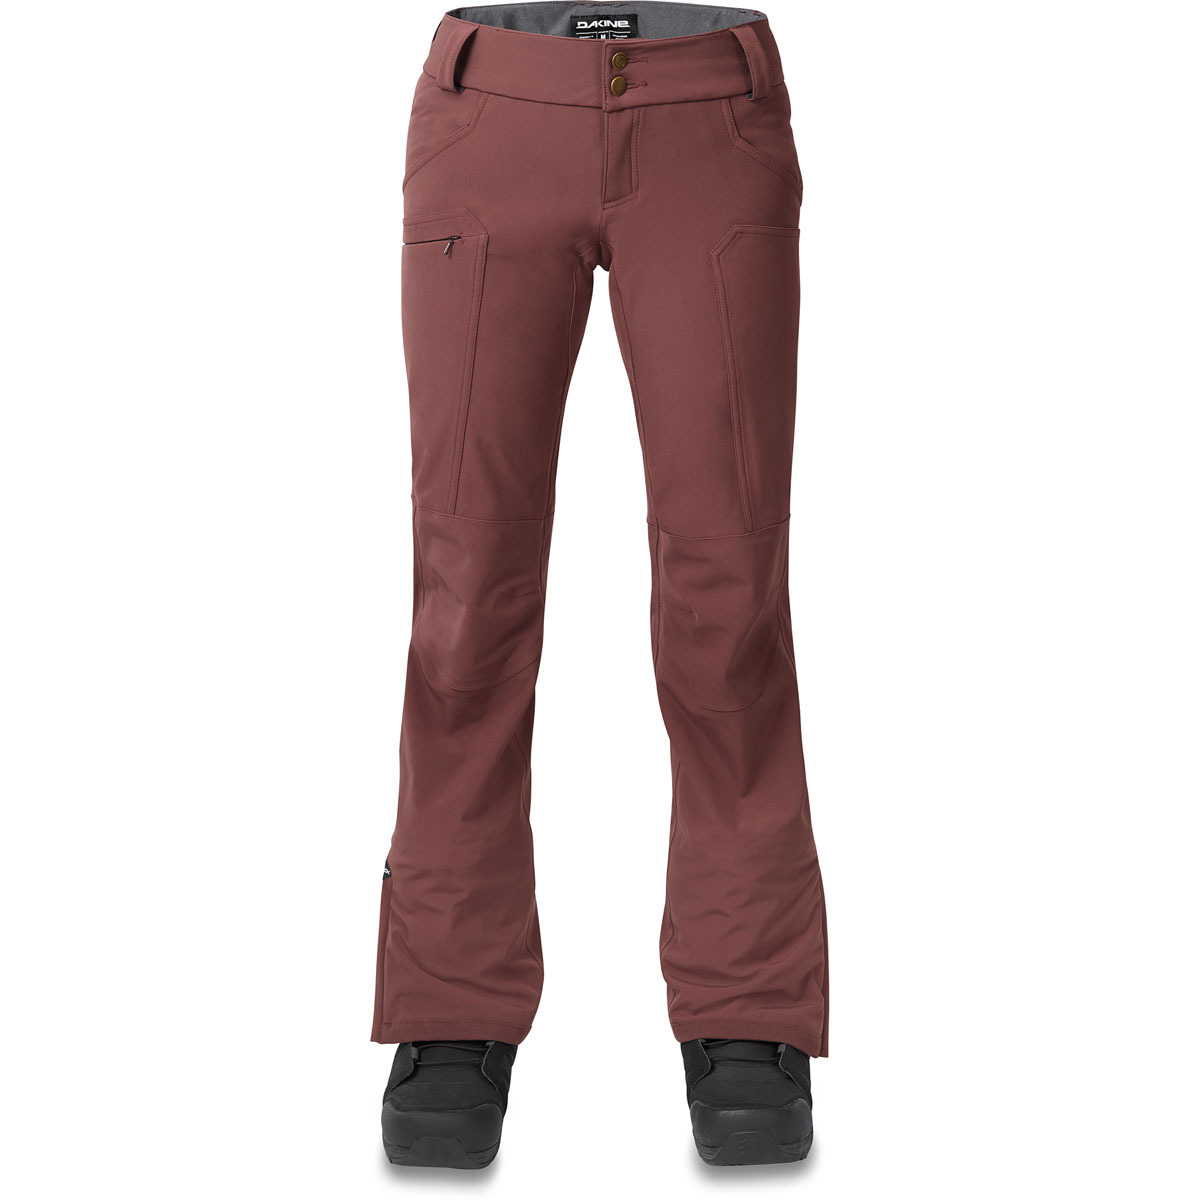 Dakine Inverness Pant in Rust Brown